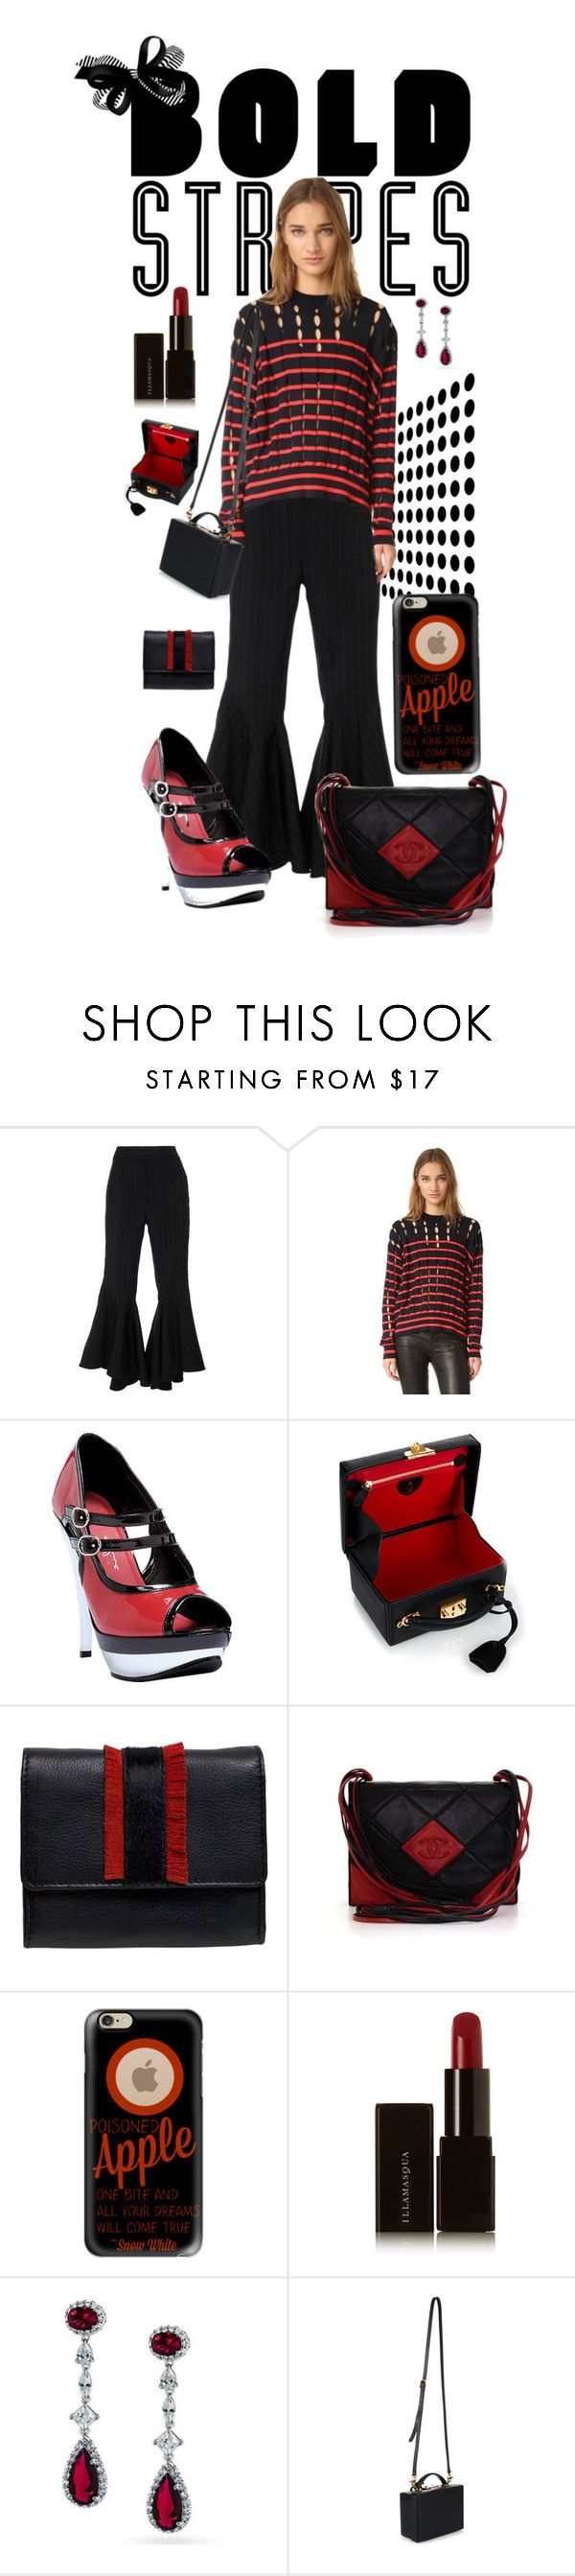 """Red & Black Bold Stripes"" by fsg-designs ❤ liked on Polyvore featuring E L L E R Y, T By Alexander Wang, Ellie, Mark Cross, Chanel, Casetify, Illamasqua, Bling Jewelry and BoldStripes"